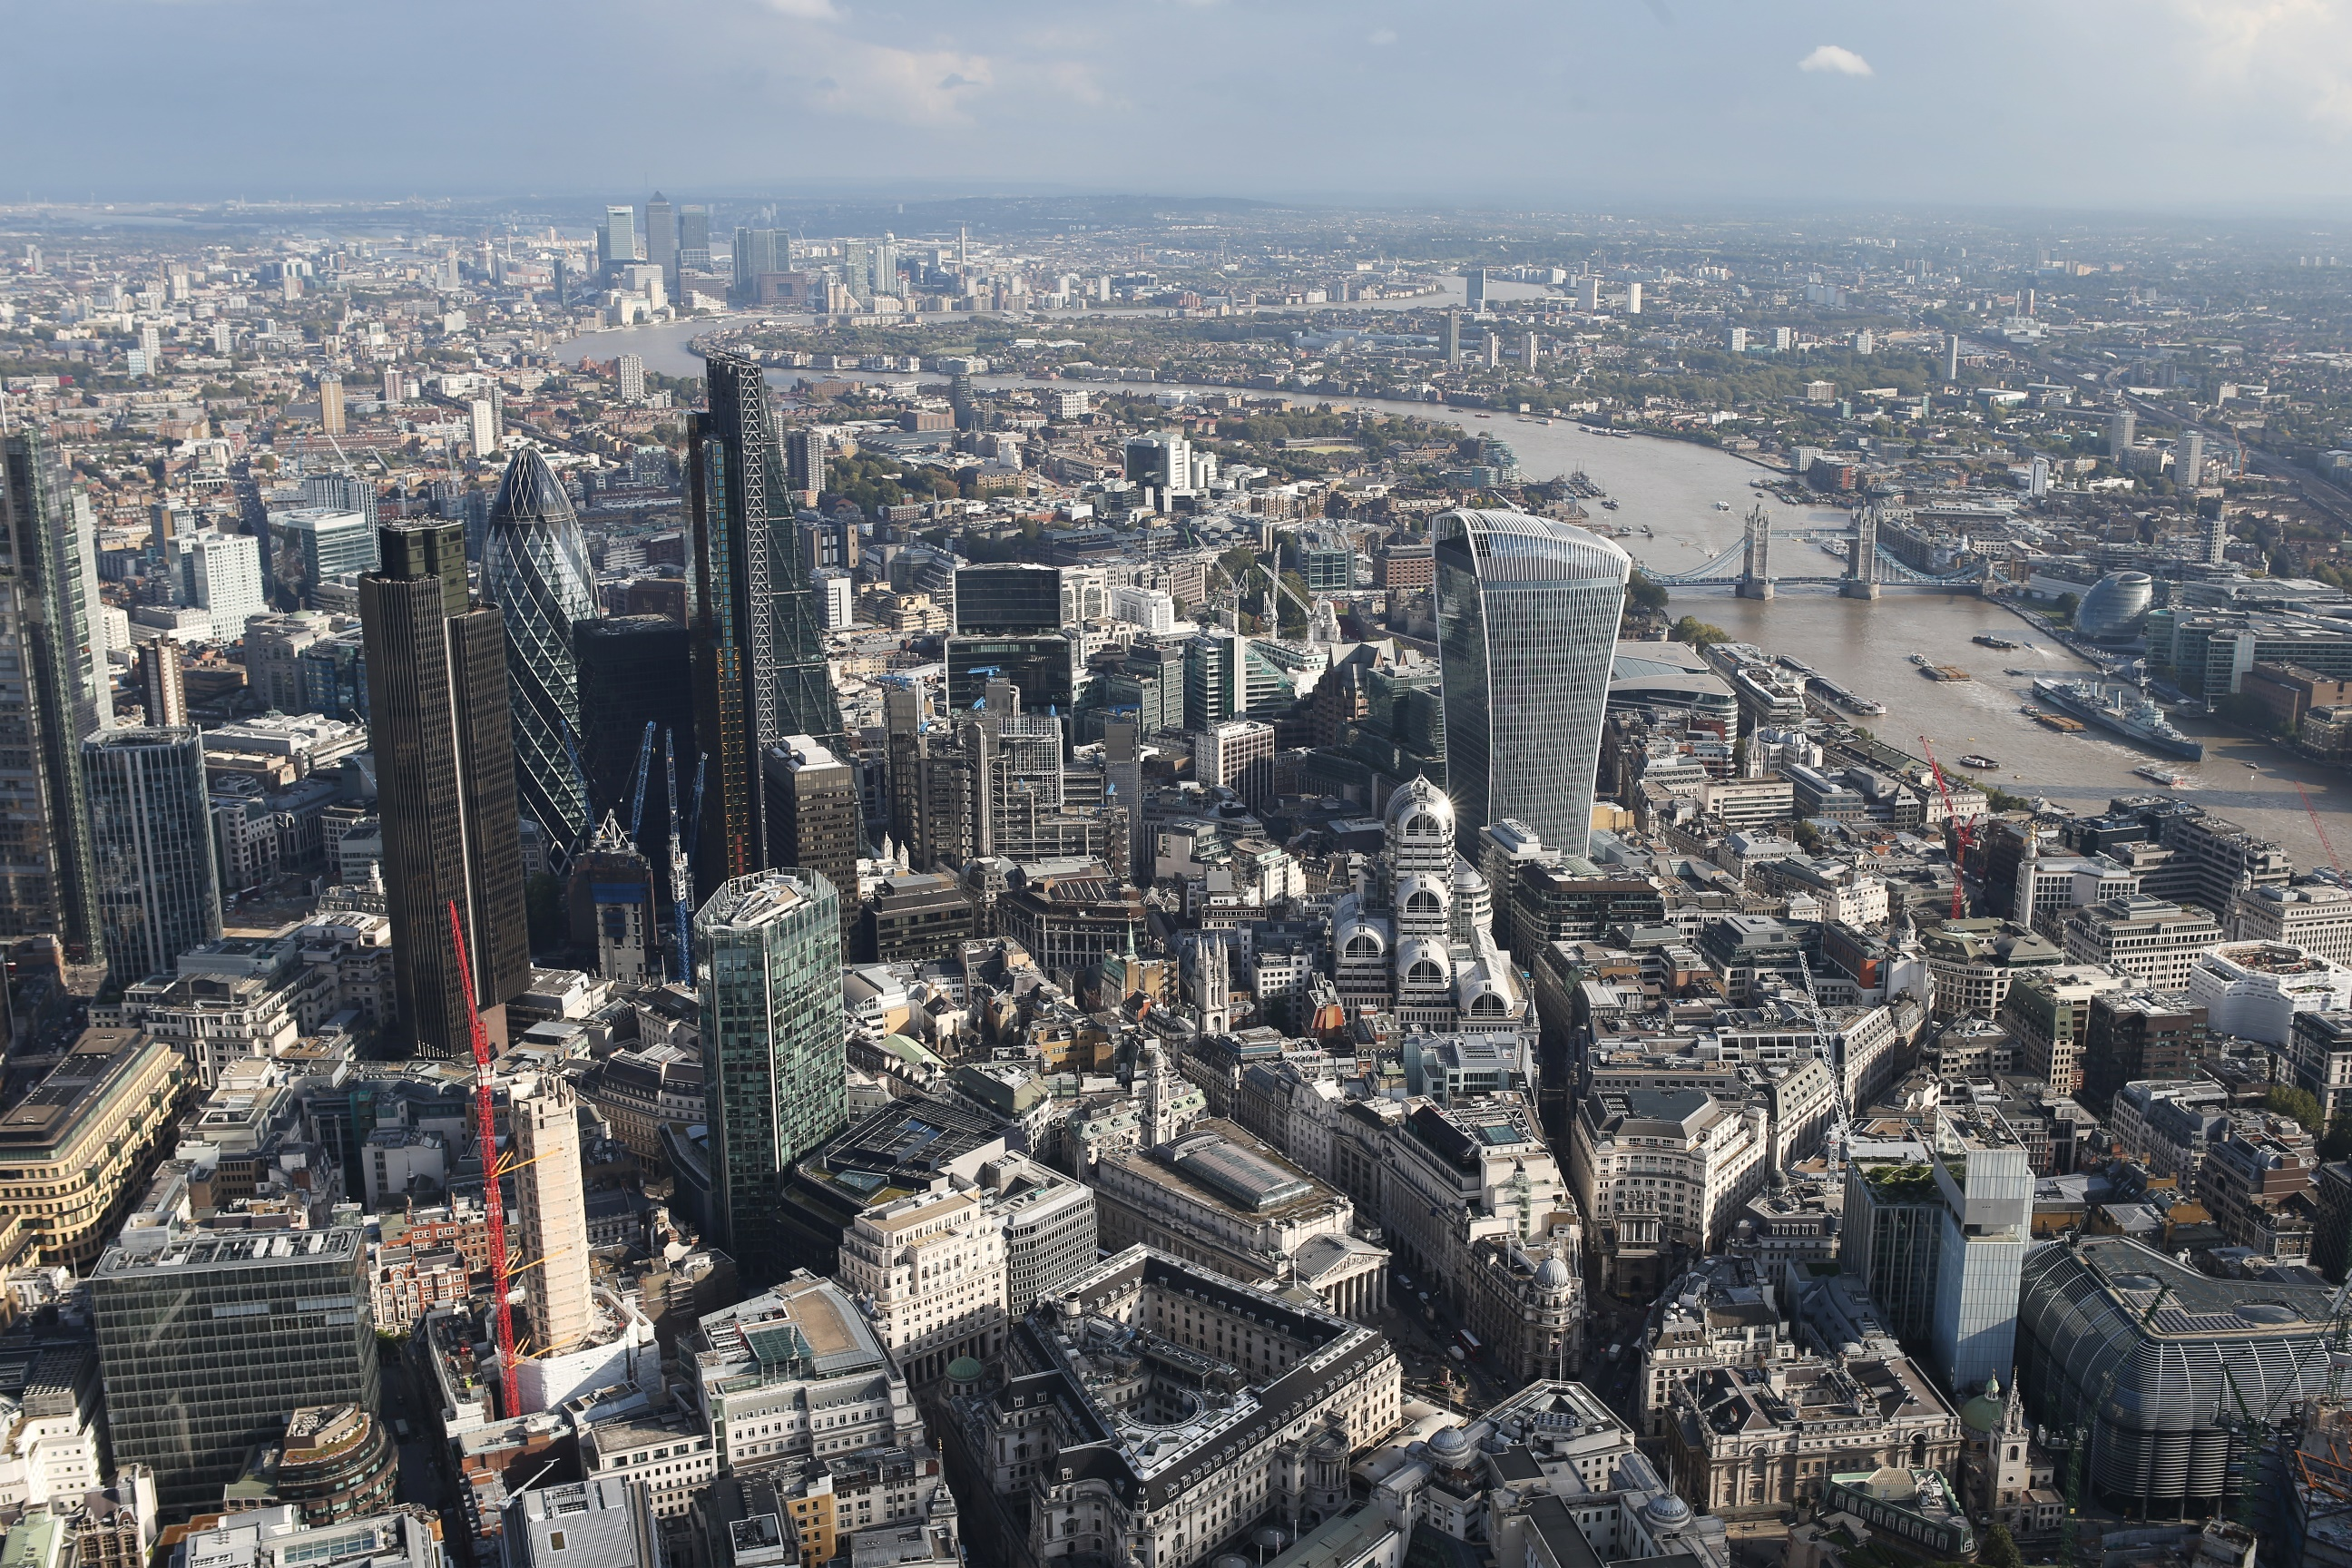 a view of london city skyline from a helicopter